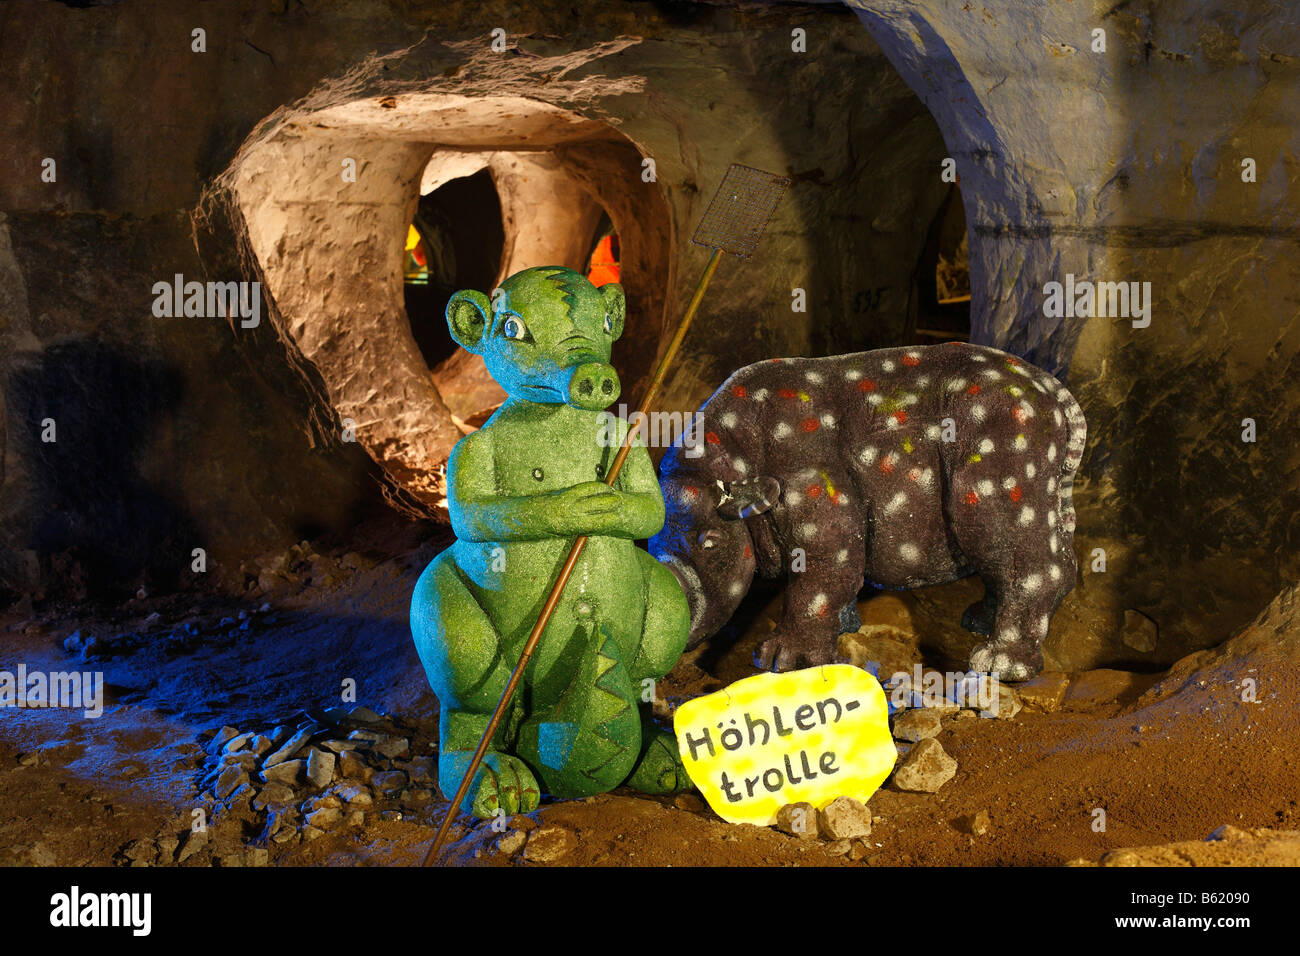 Cave troll, figure in the Walldorf sandstone and fairytale cave, Rhoen, Thuringia, Gerrmany, Europe - Stock Image